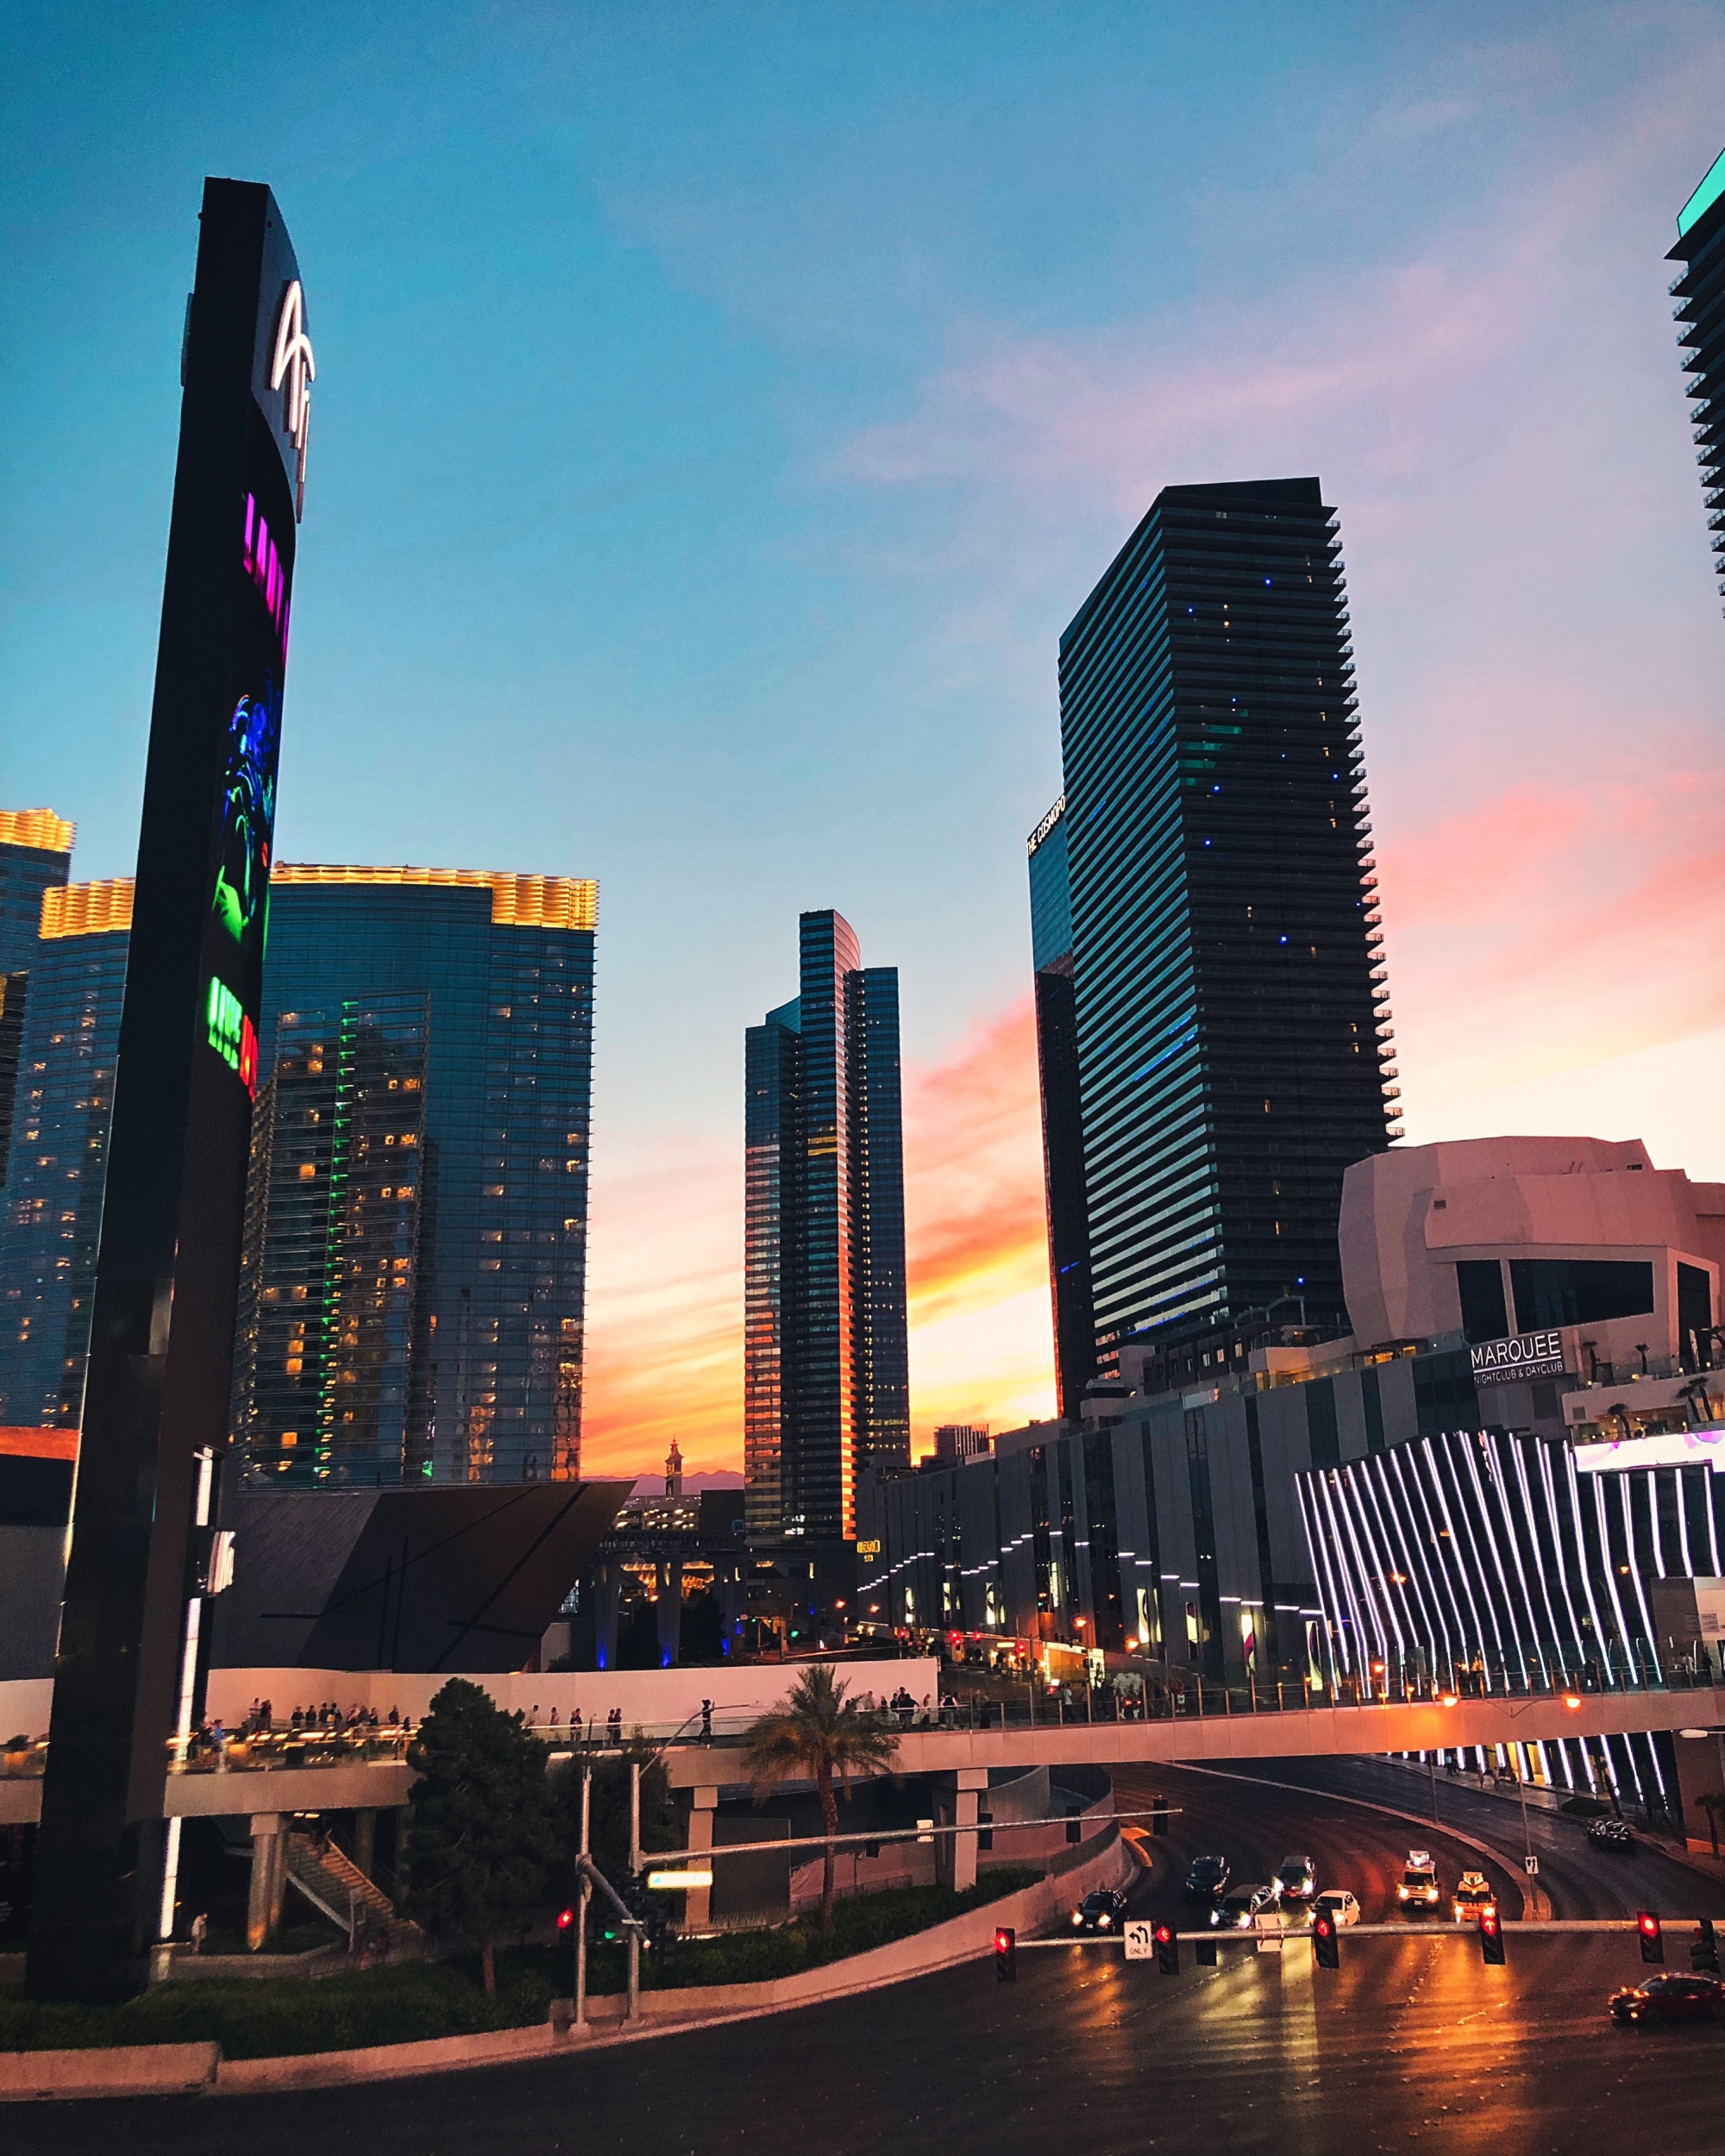 Las Vegas - Sunset over The Strip